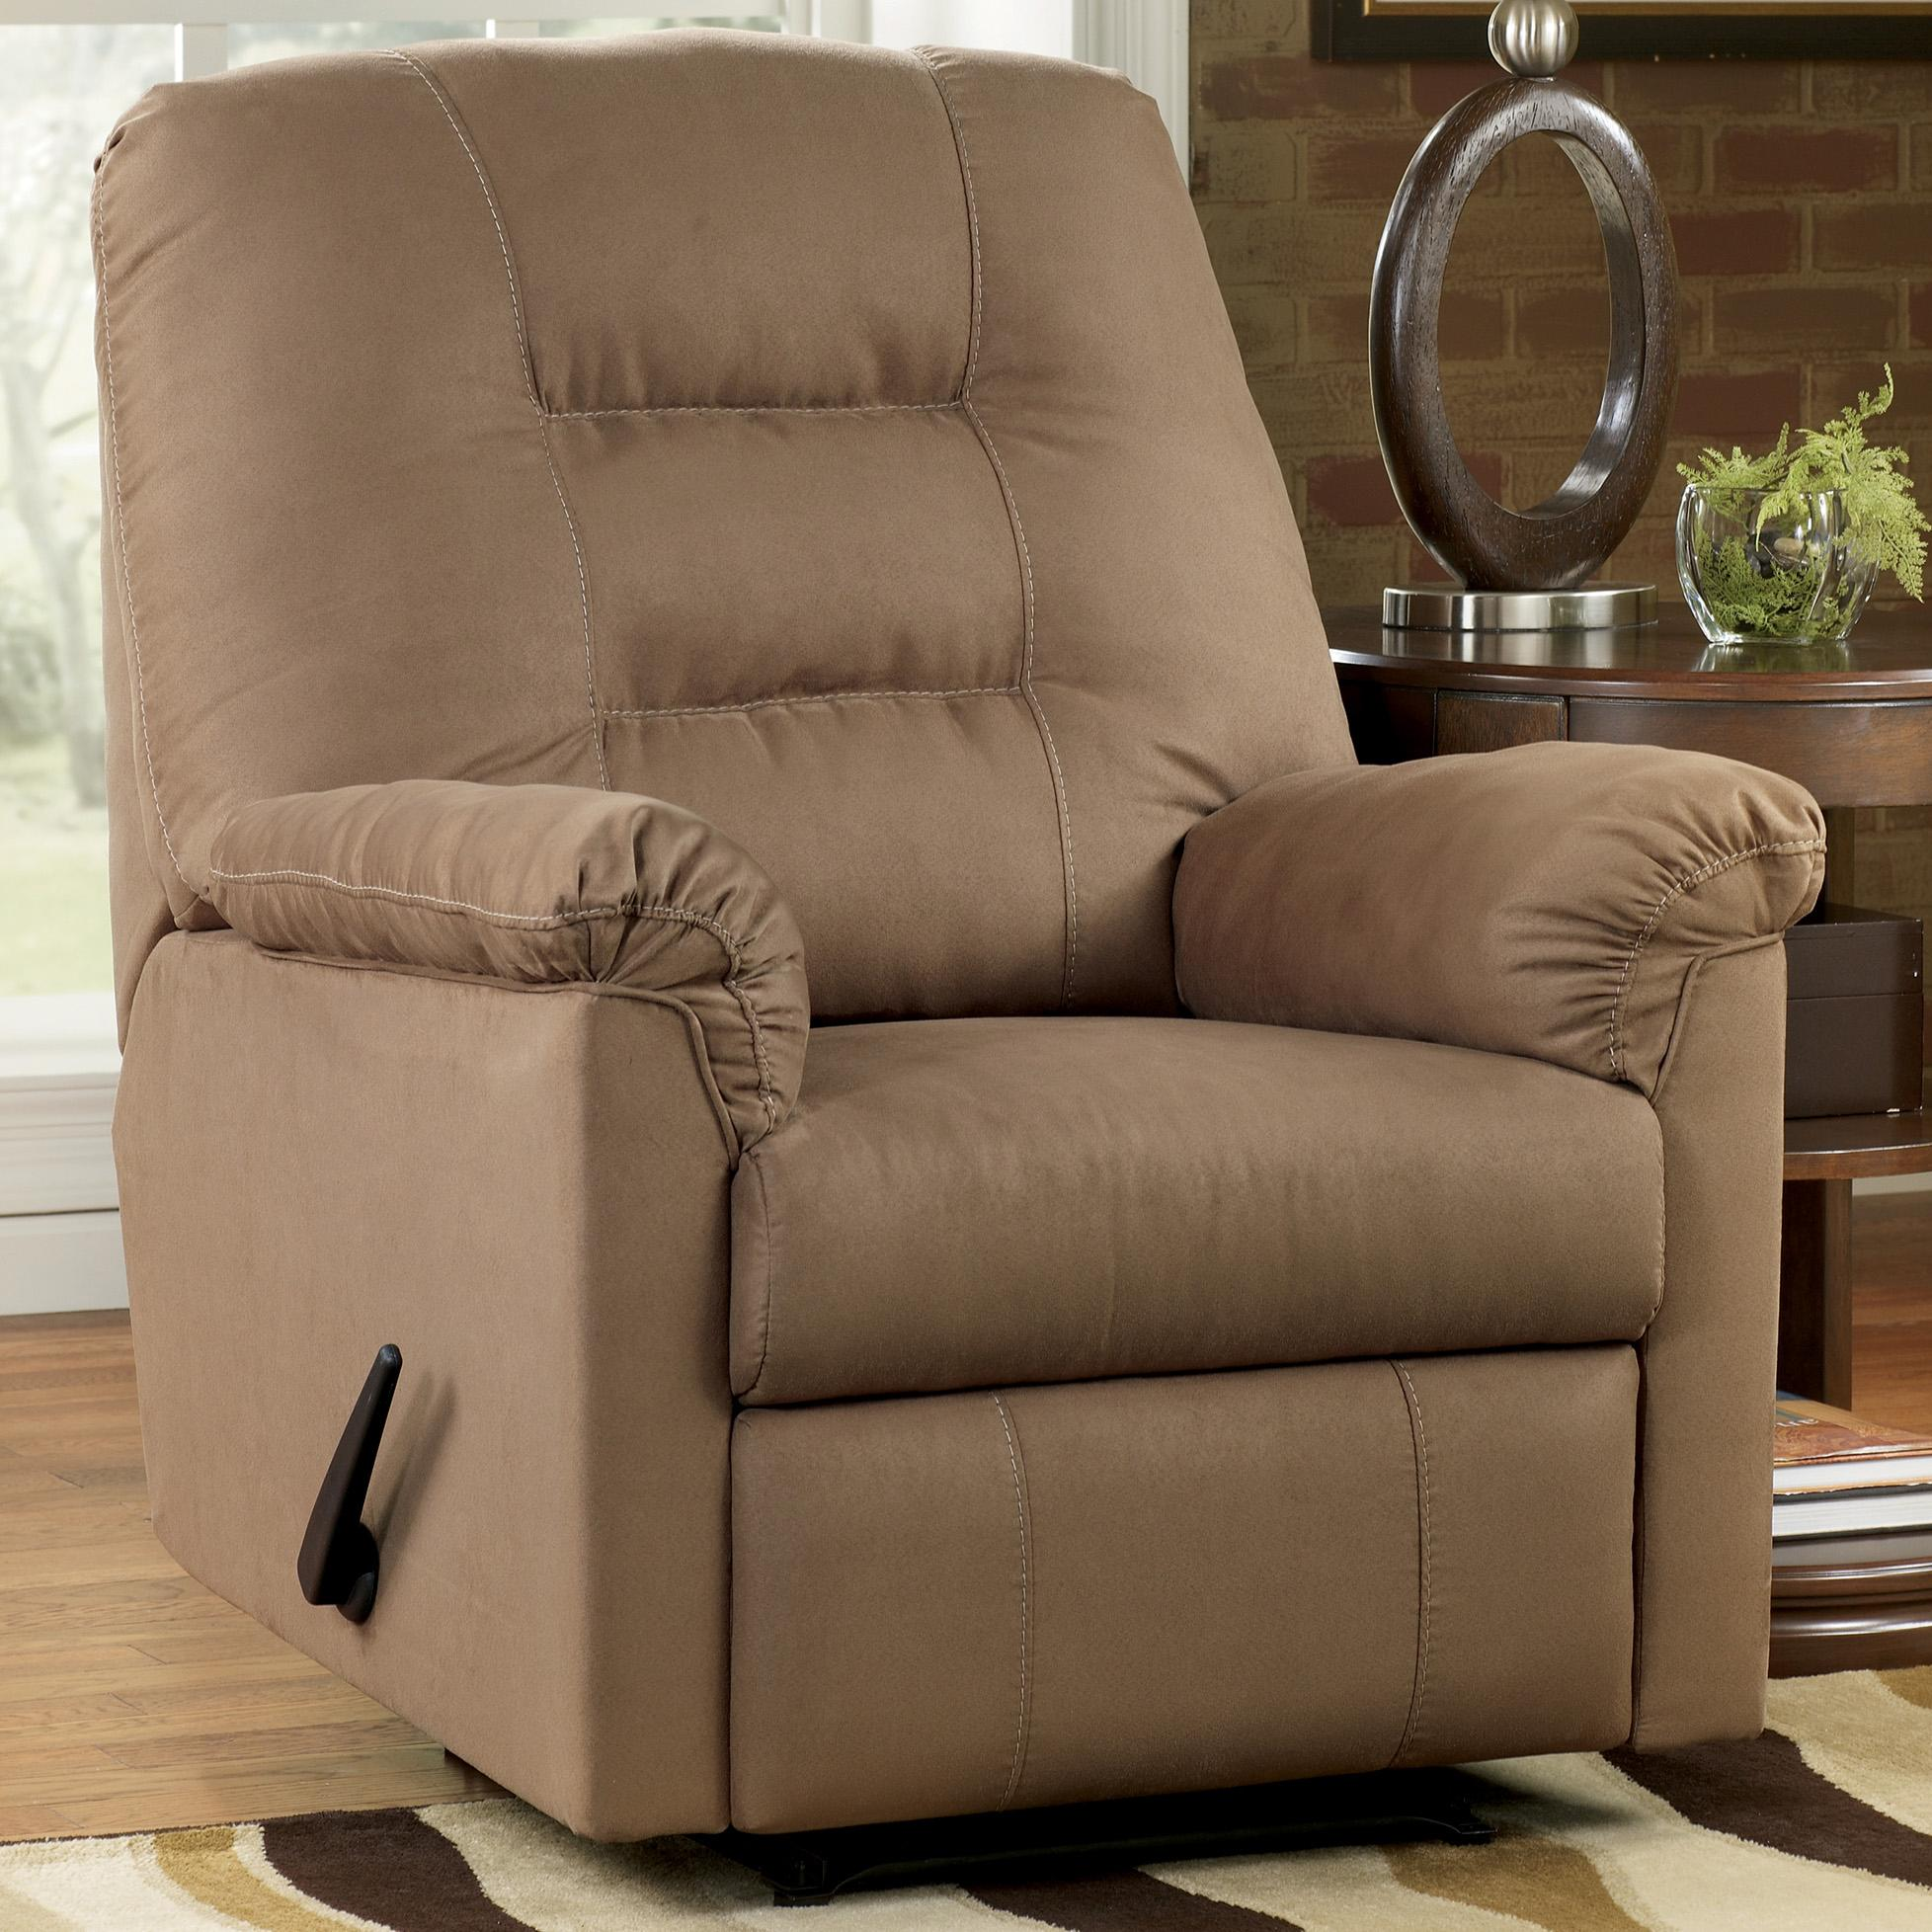 Signature Design by Ashley Harold Point Zero Wall Recliner - Item Number: 7560129